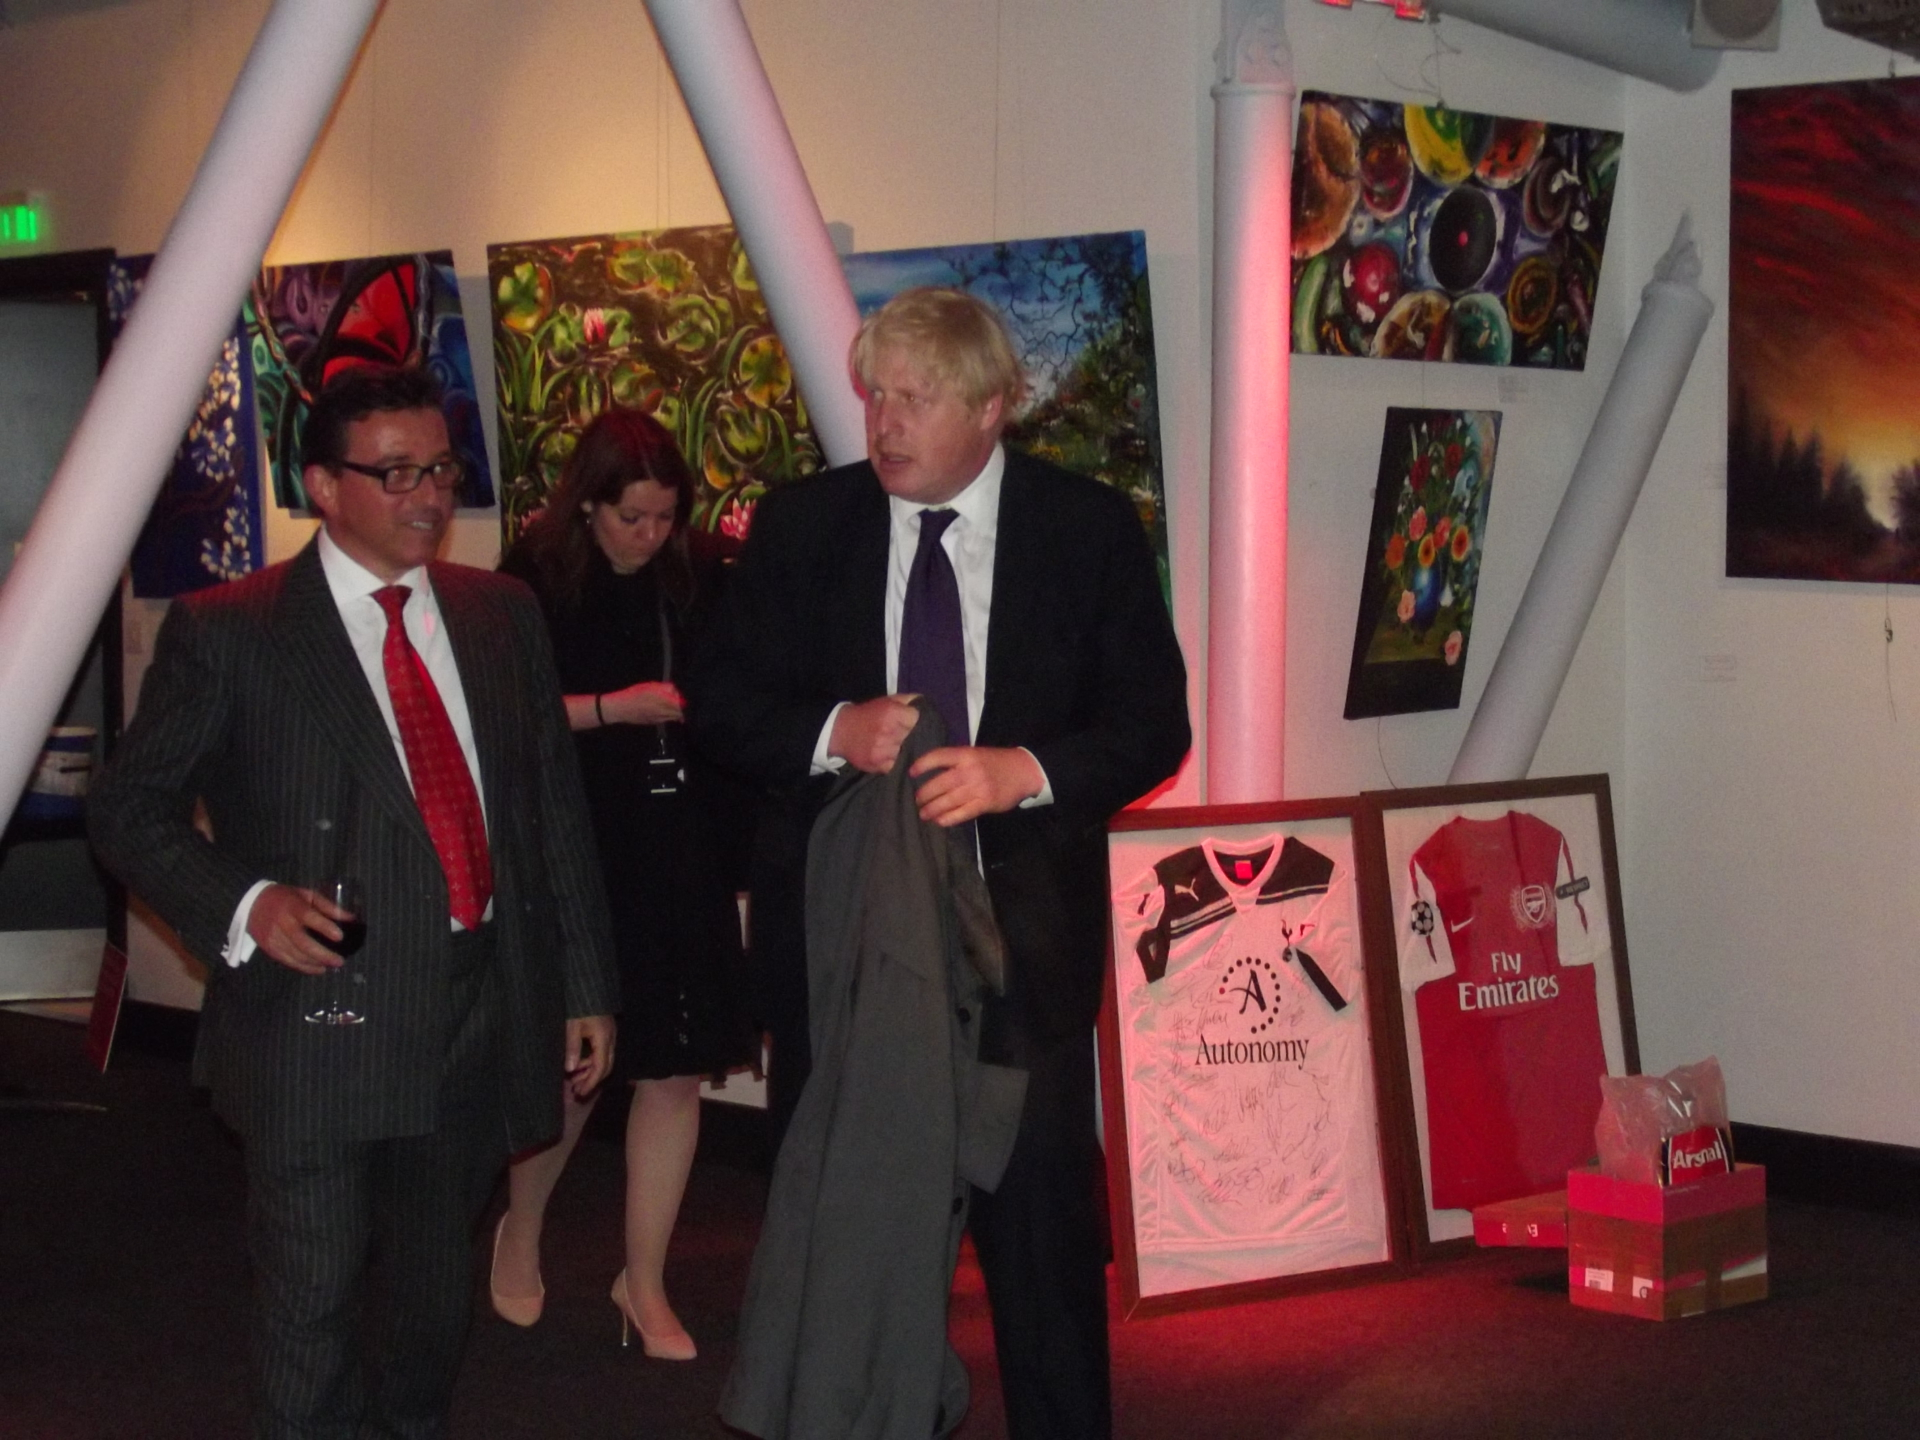 Art Auction with Boris Johnson, EastEnders actors & other celebrities.  3 of Mbengs Paintings were bought by MP.